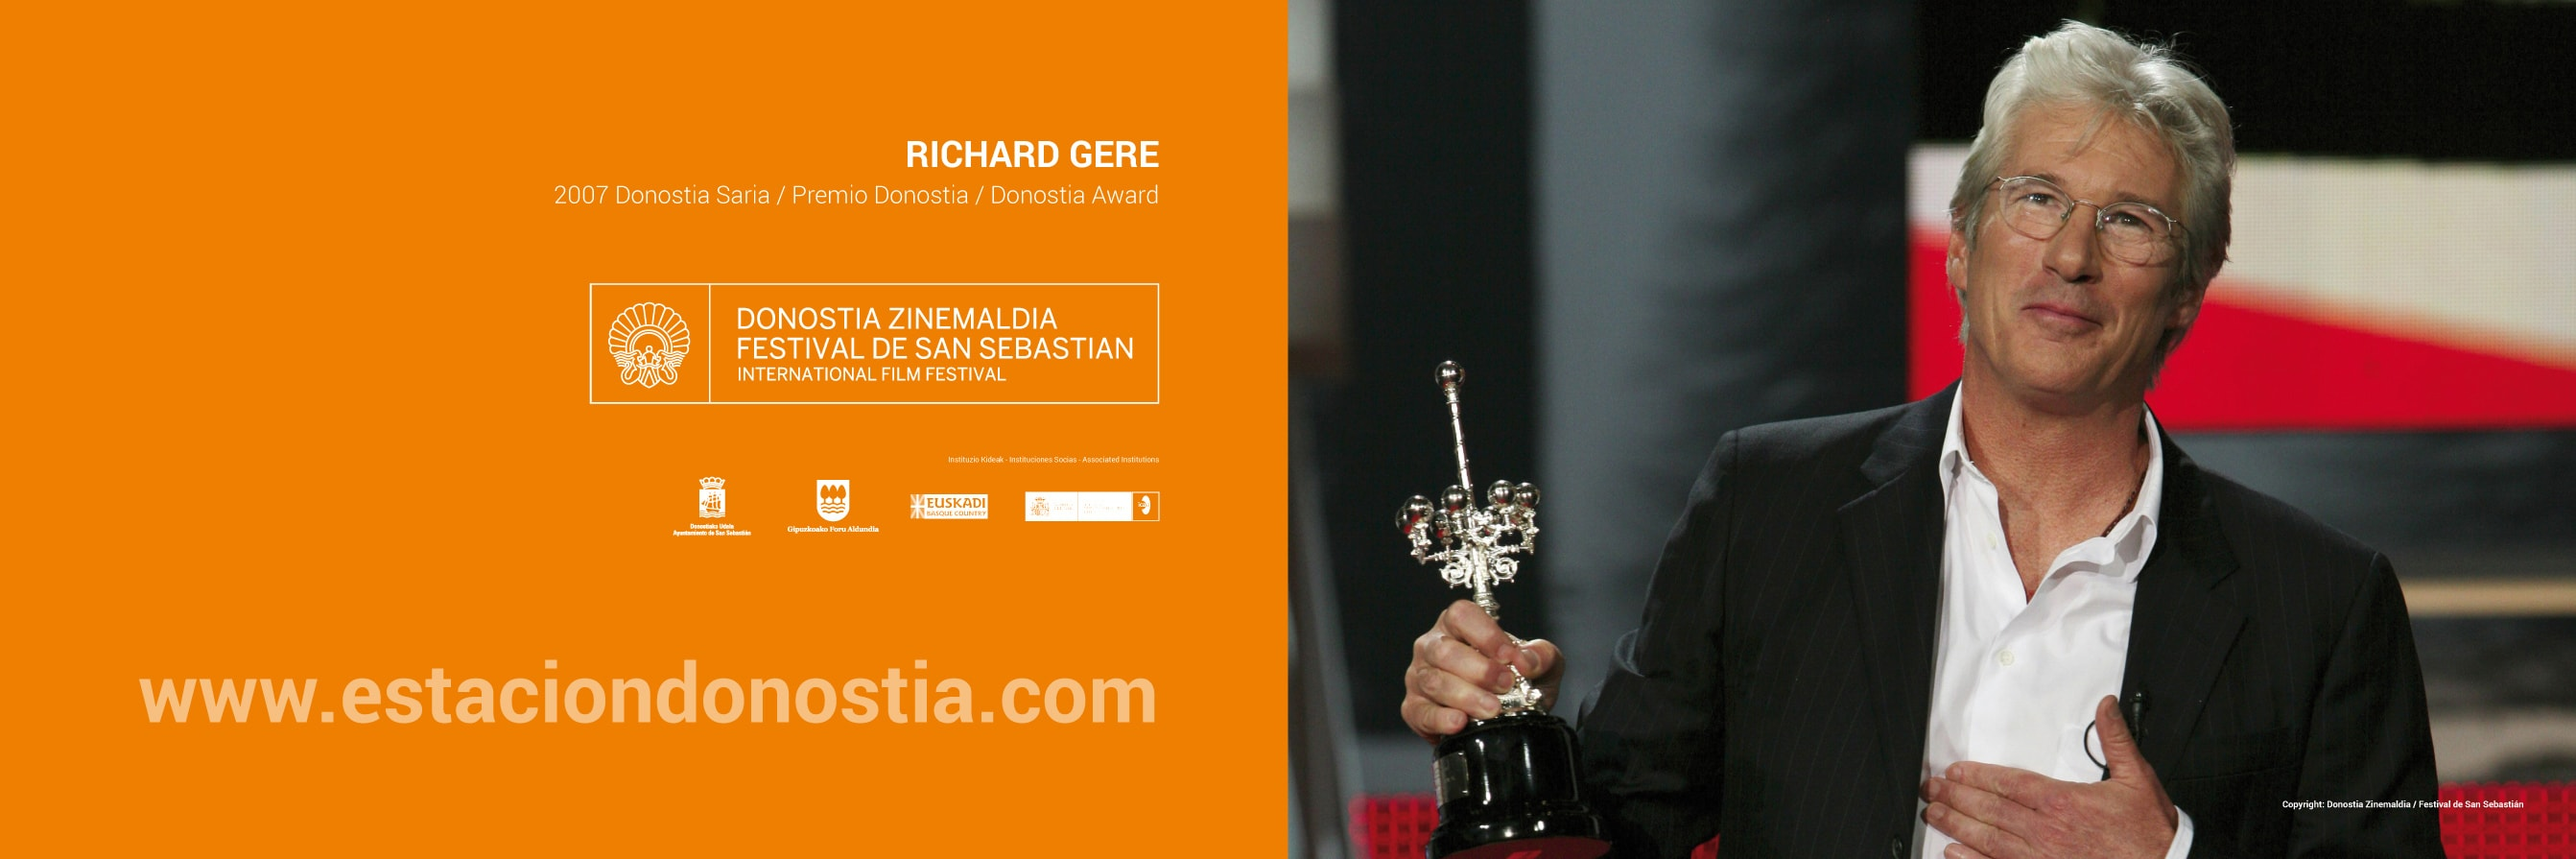 Richard Gere (2007)